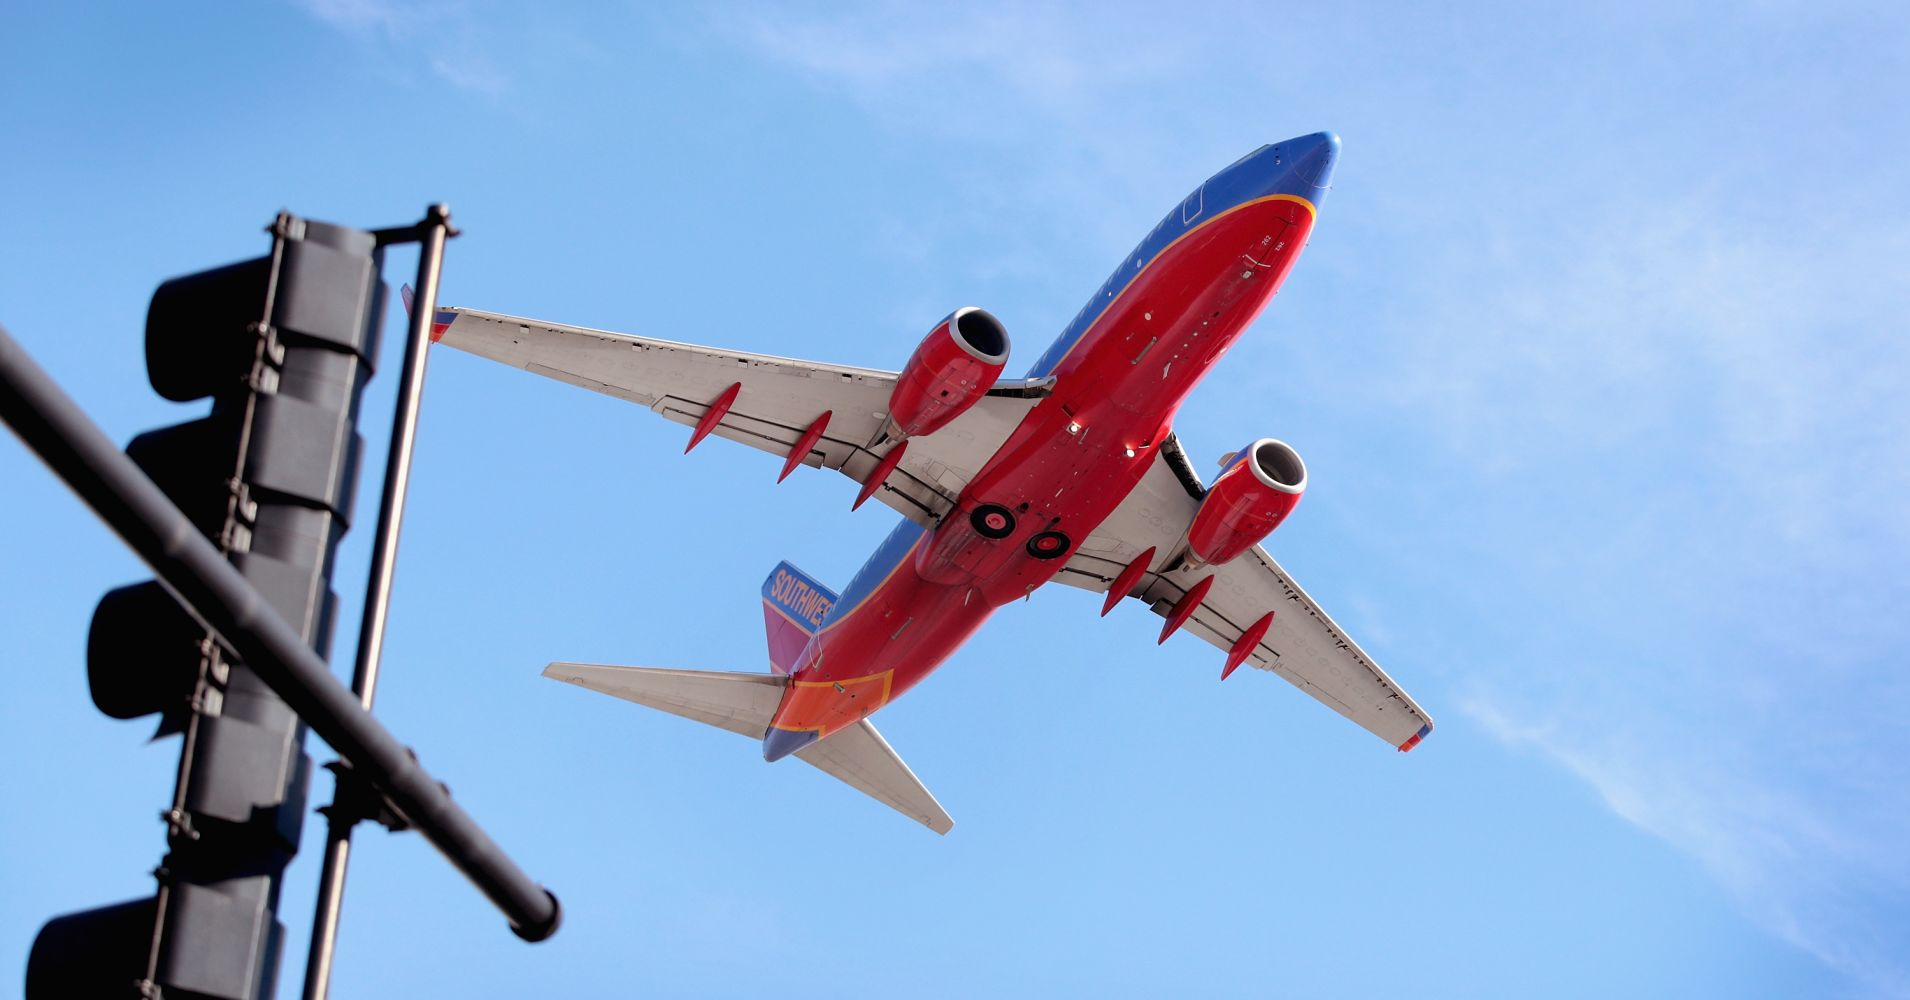 A Southwest Airlines jet leaves Midway Airport on January 25, 2018 in Chicago, Illinois.